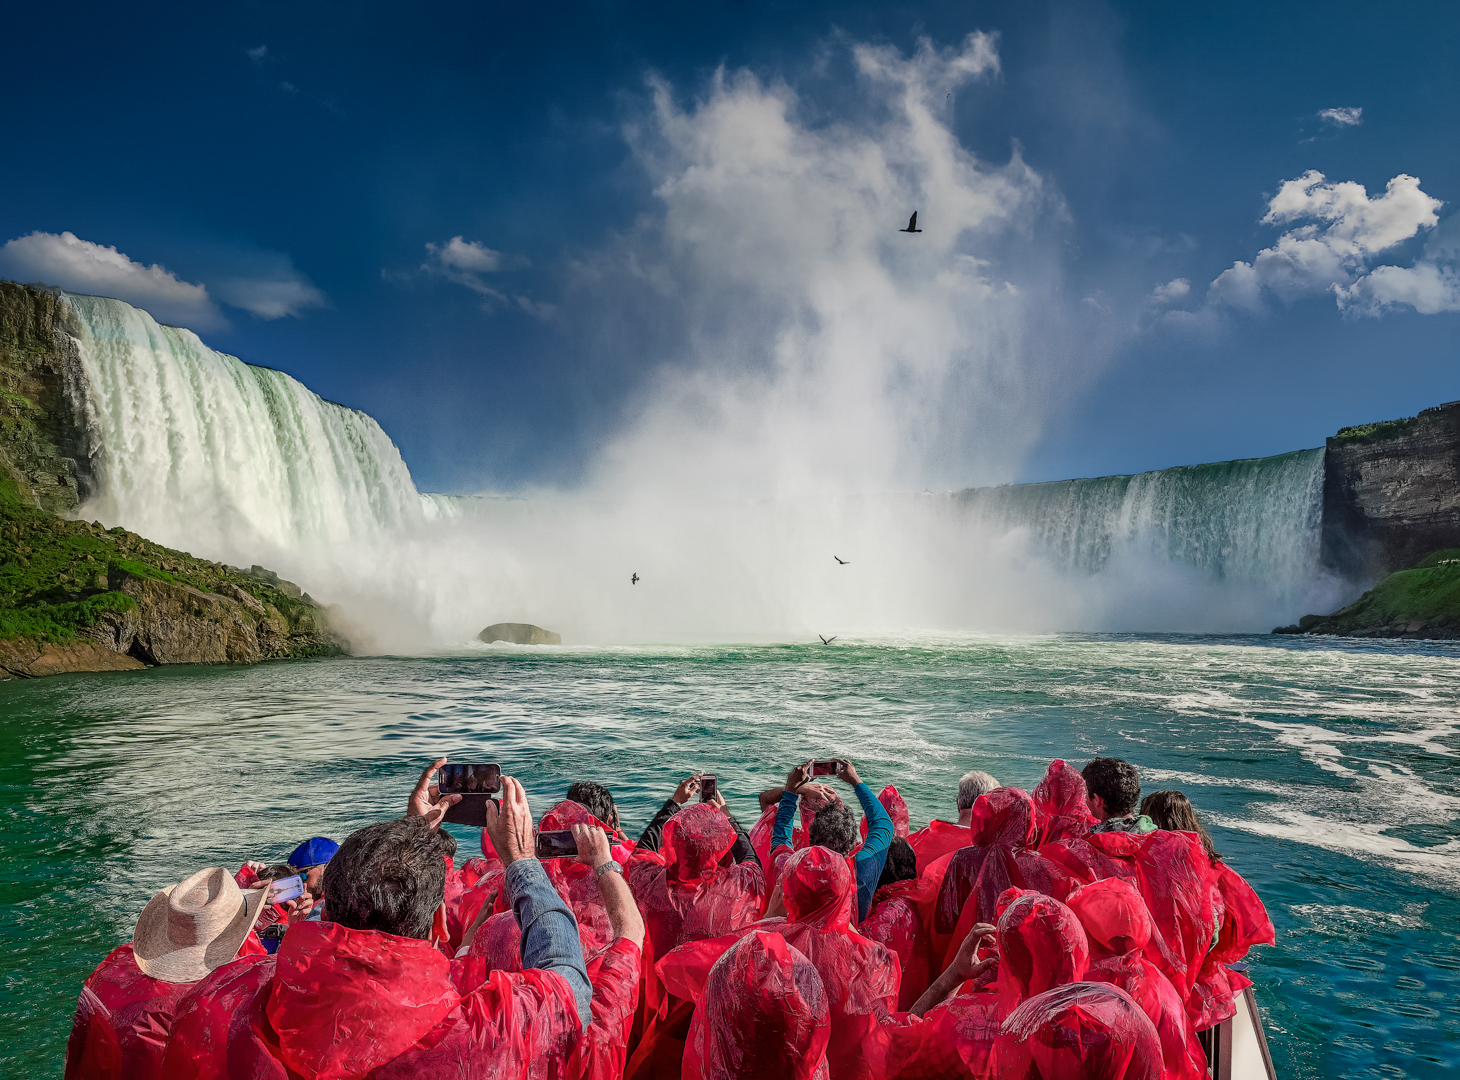 World Famous Niagara Falls